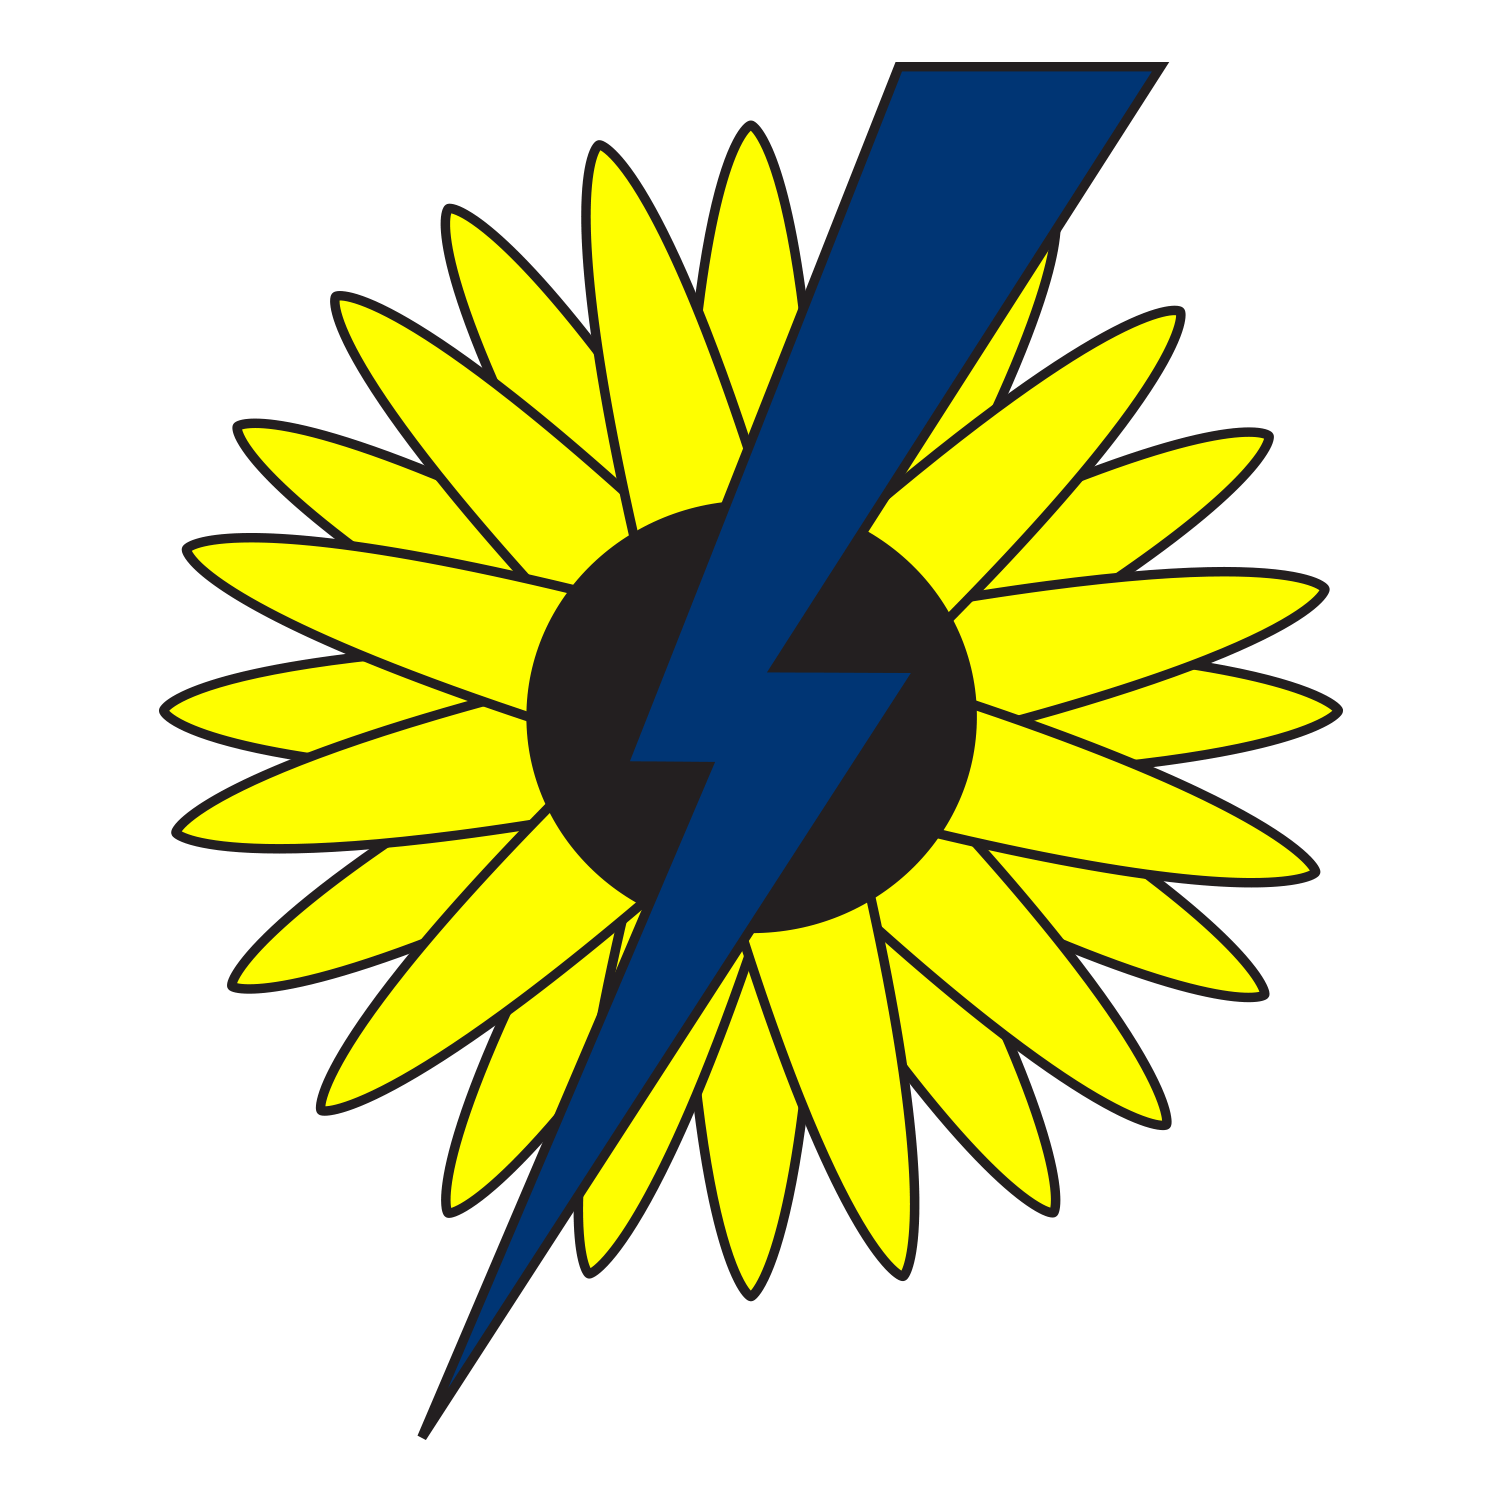 Sunflower Electric Power logo